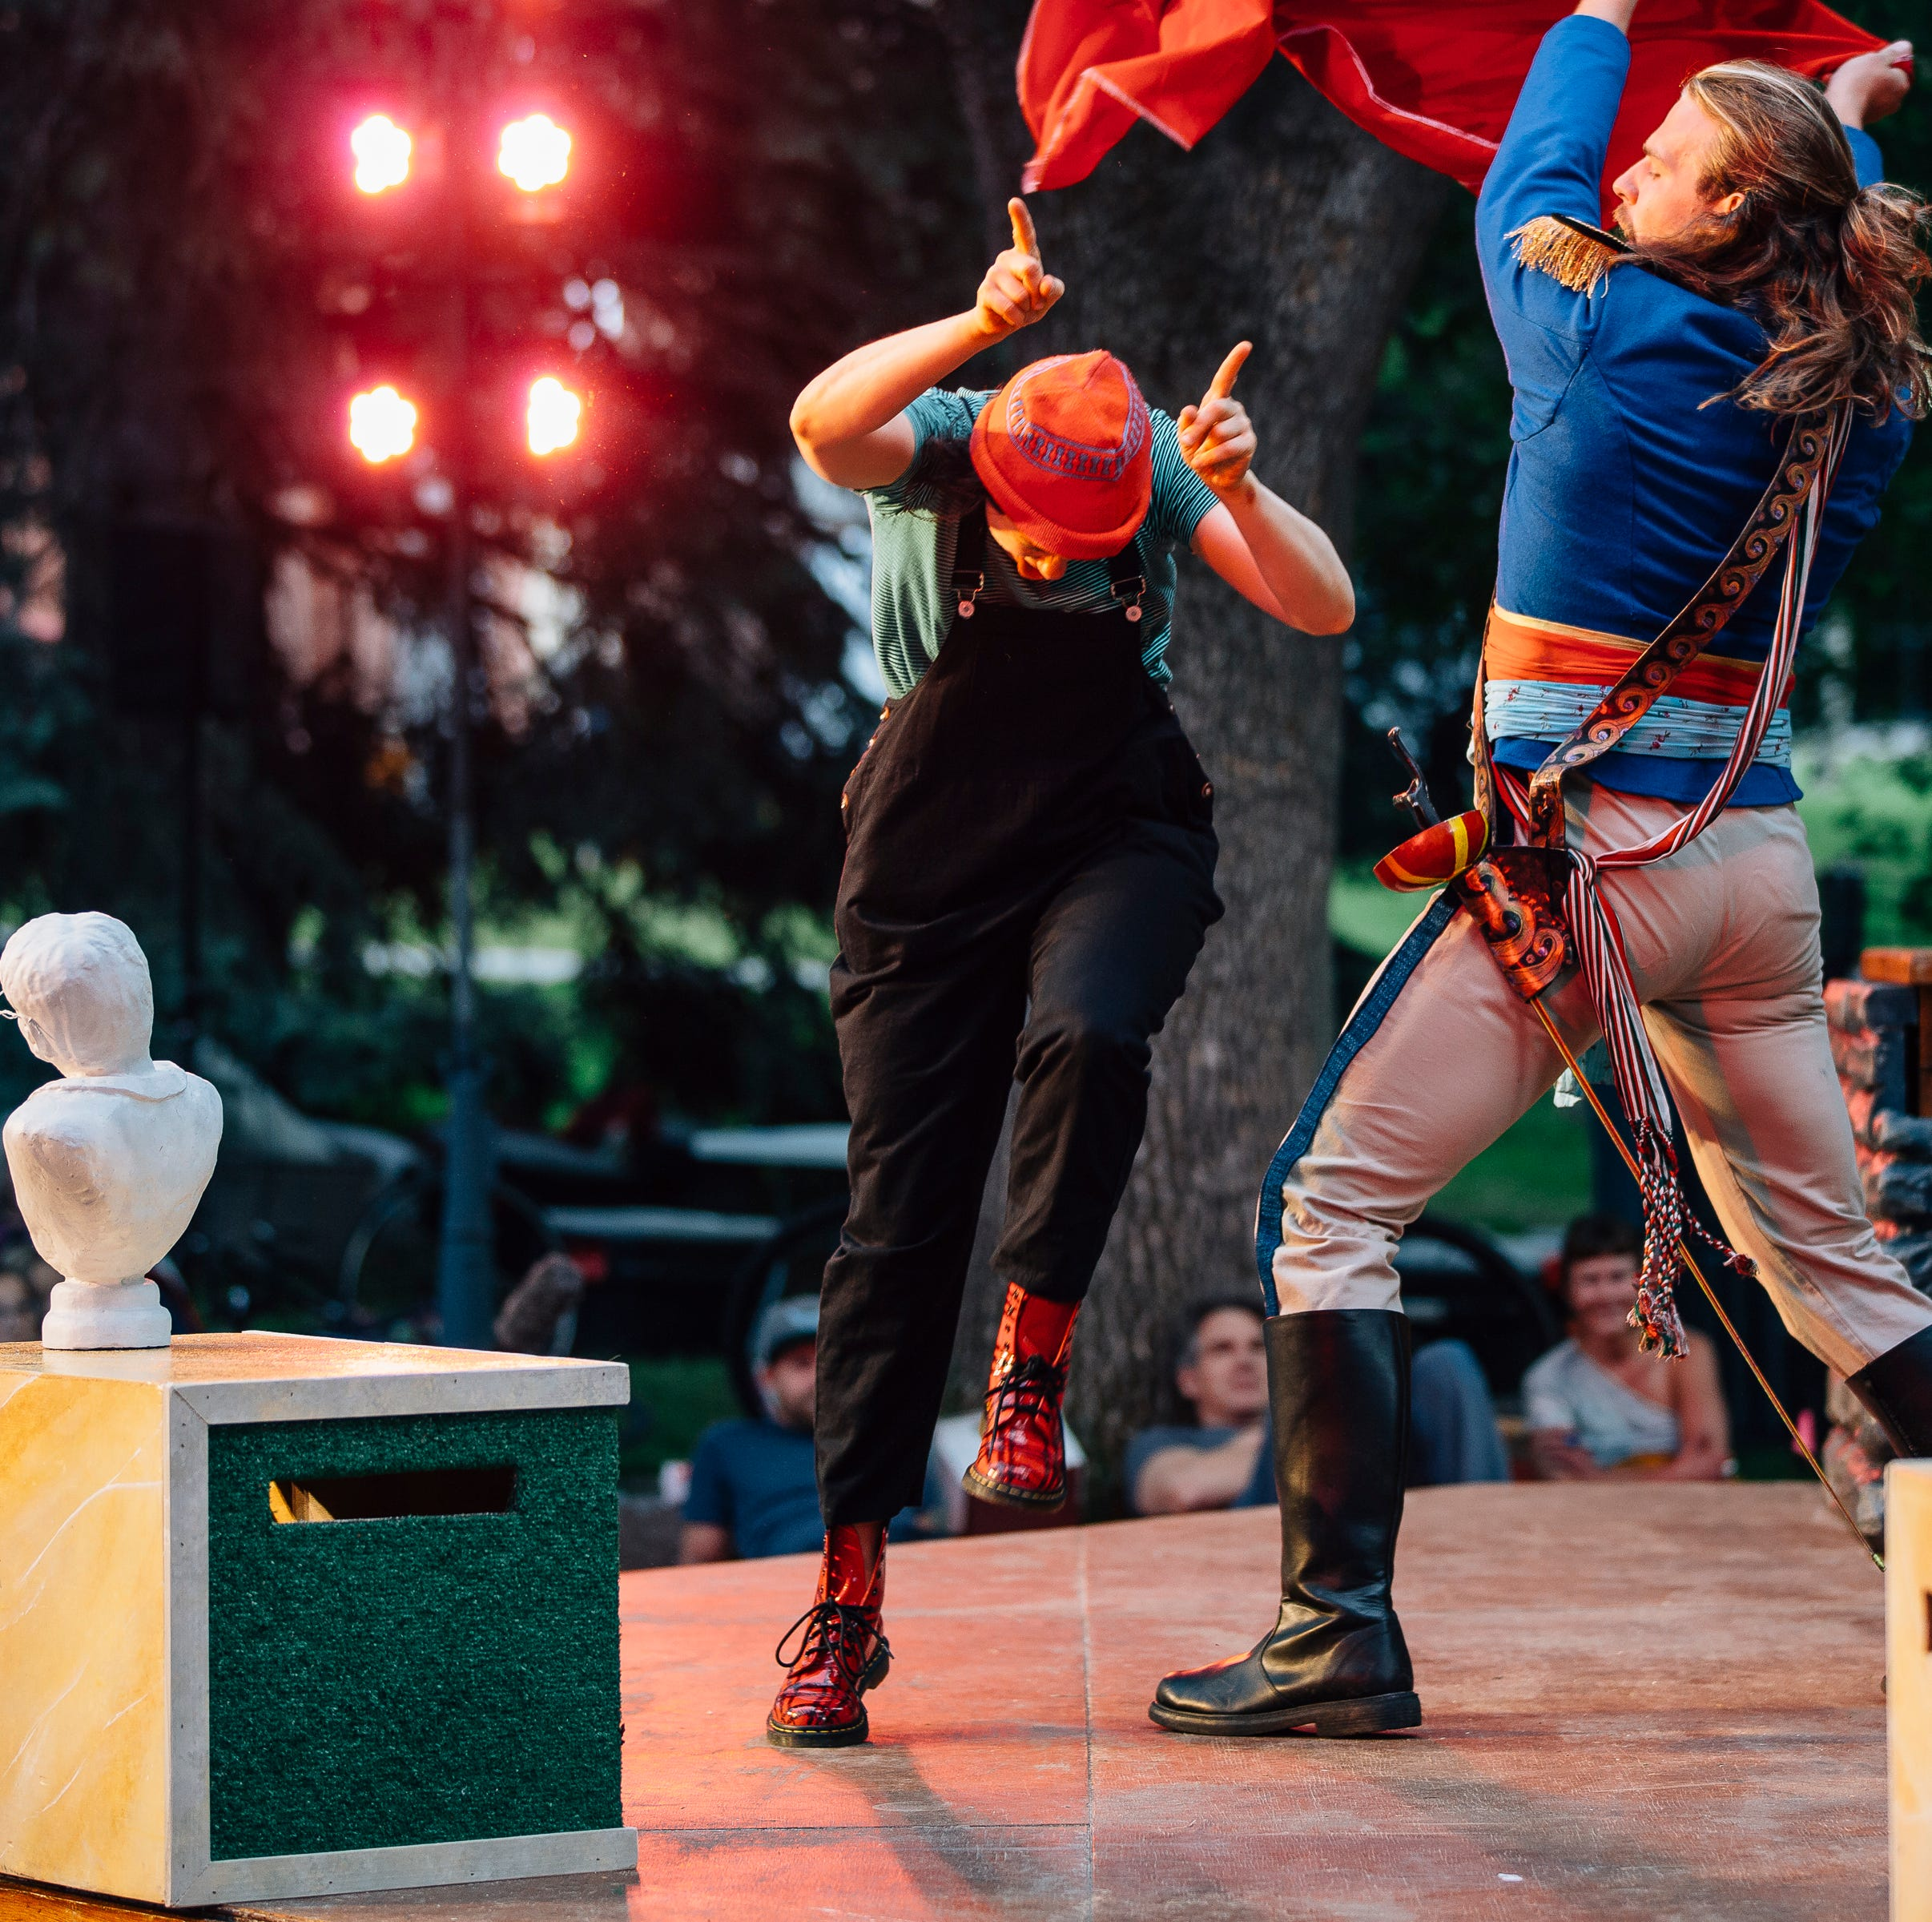 Shakespeare, blues music, law enforcement grudge match among weekend events